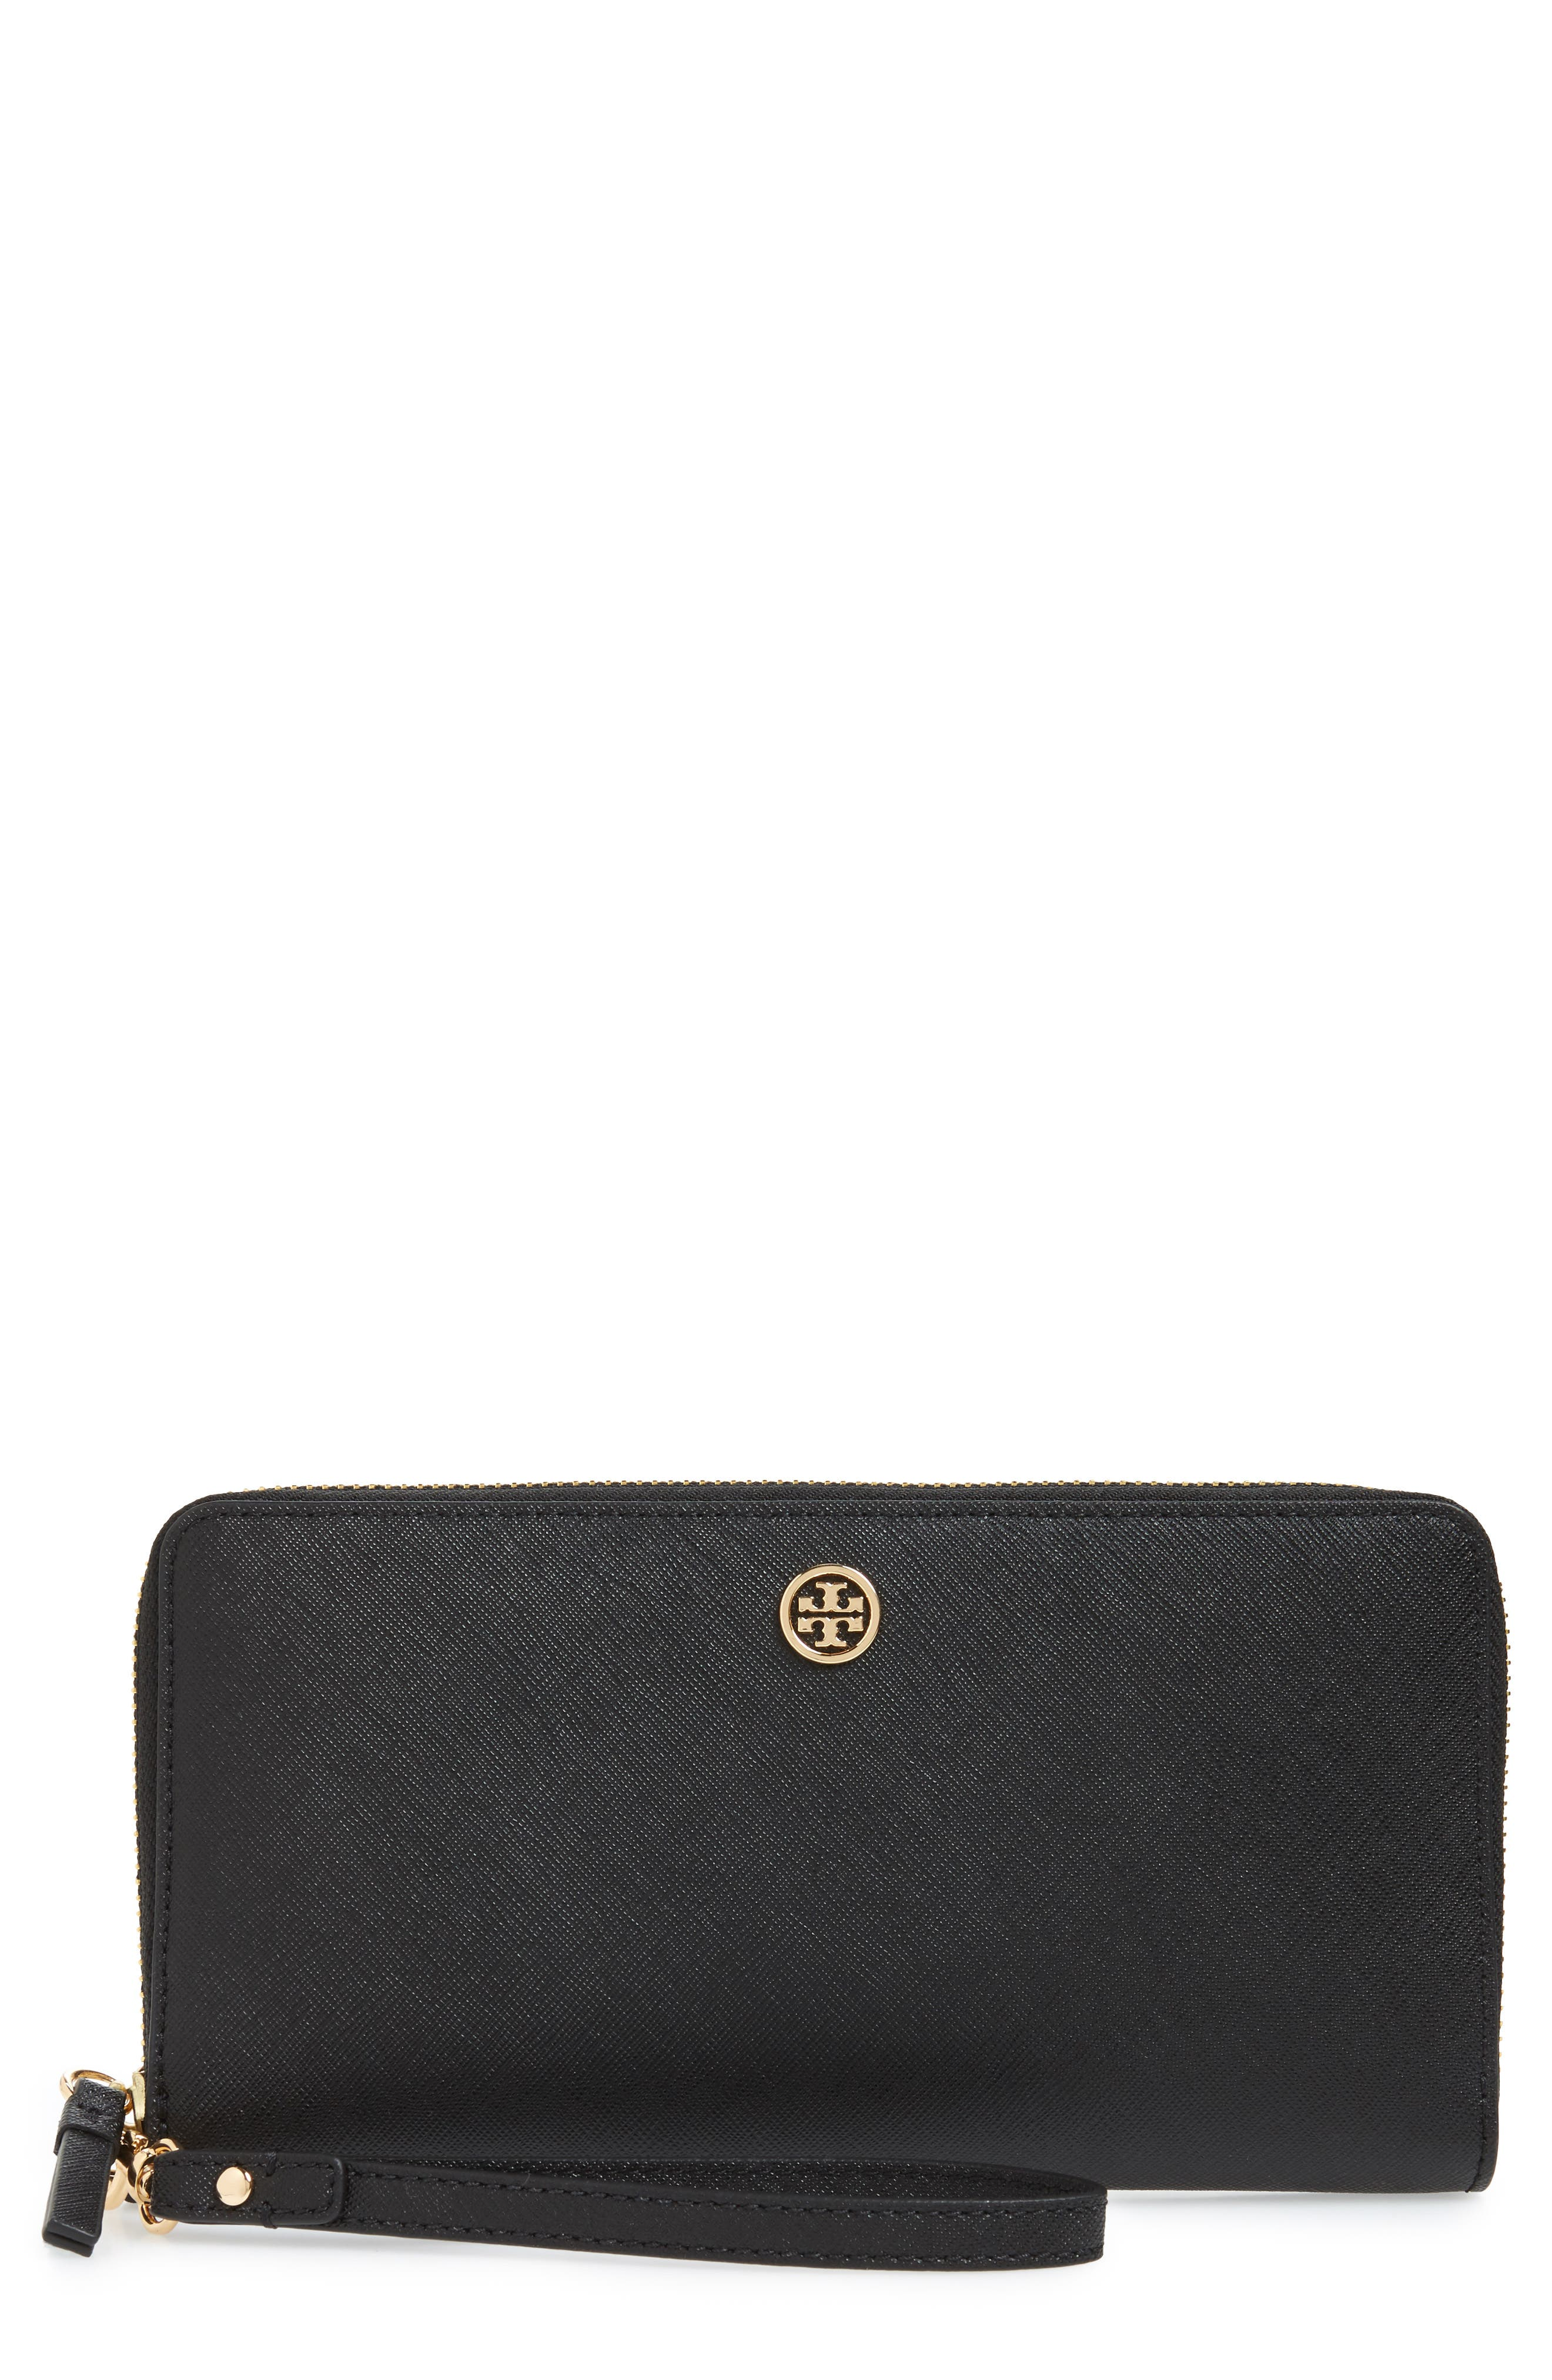 TORY BURCH Robinson Leather Passport Continental Wallet, Main, color, BLACK / ROYAL NAVY